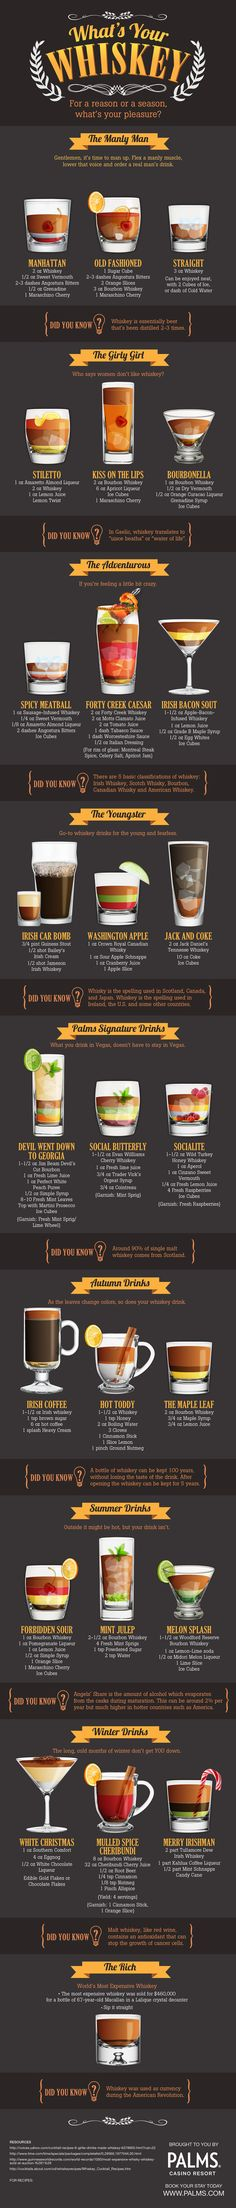 Palm's Casino Resort Whiskey Infographic by Pam Brown {dezinegirl}, via Behance